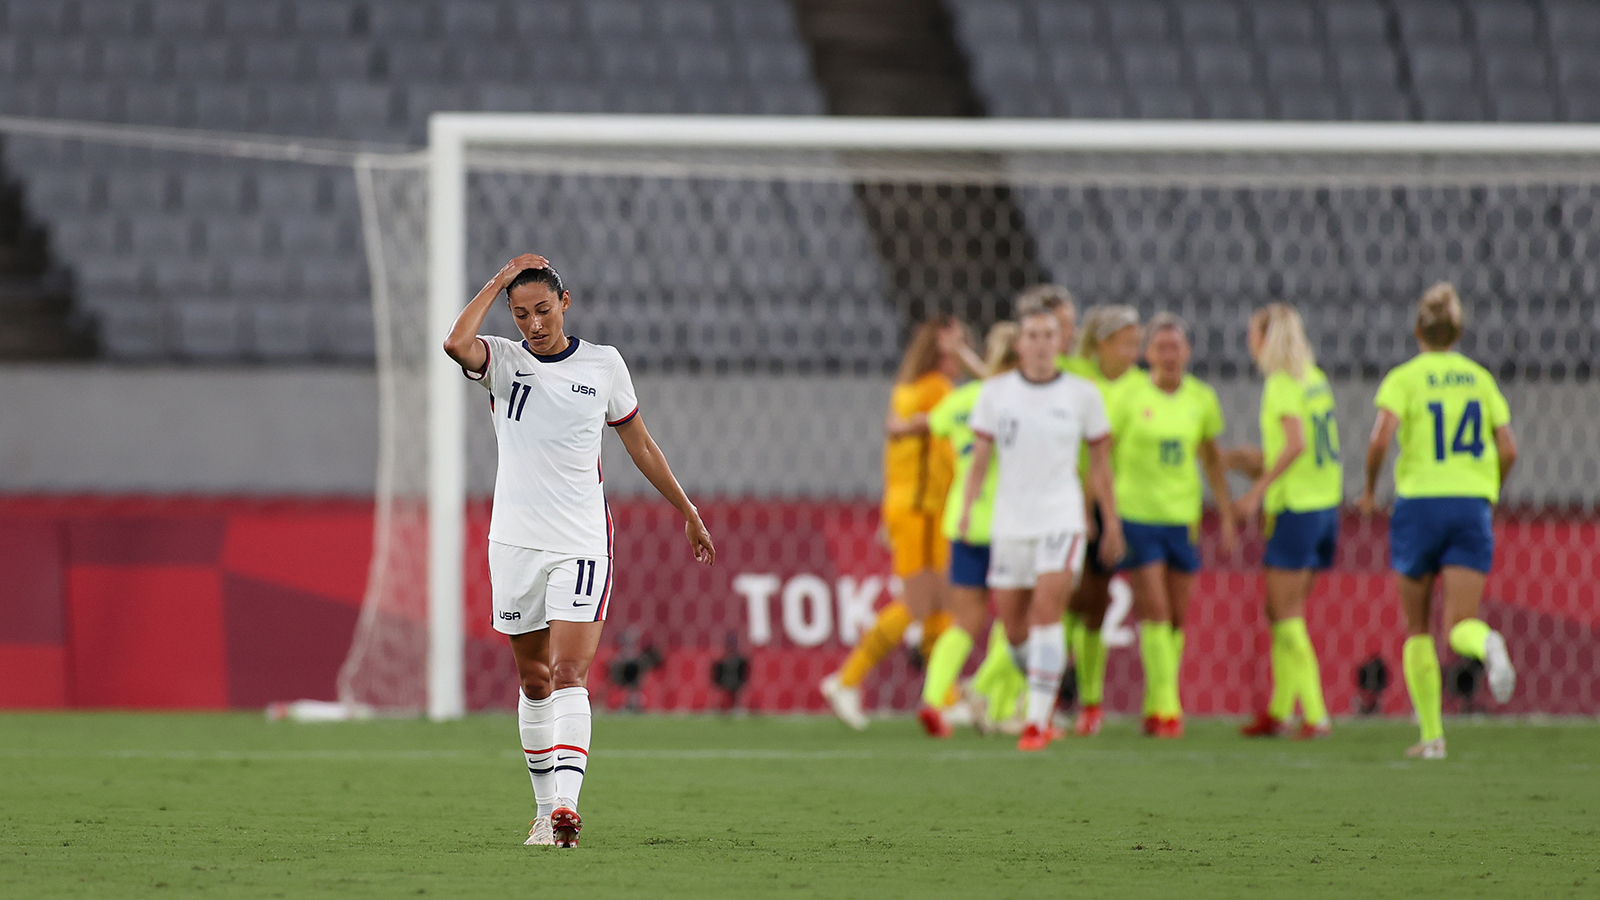 Christen Press #11 of Team United States looks dejected during the Women's First Round Group G match between Sweden and the US during the Tokyo 2020 Olympic Games on July 21, in Chofu, Tokyo, Japan.